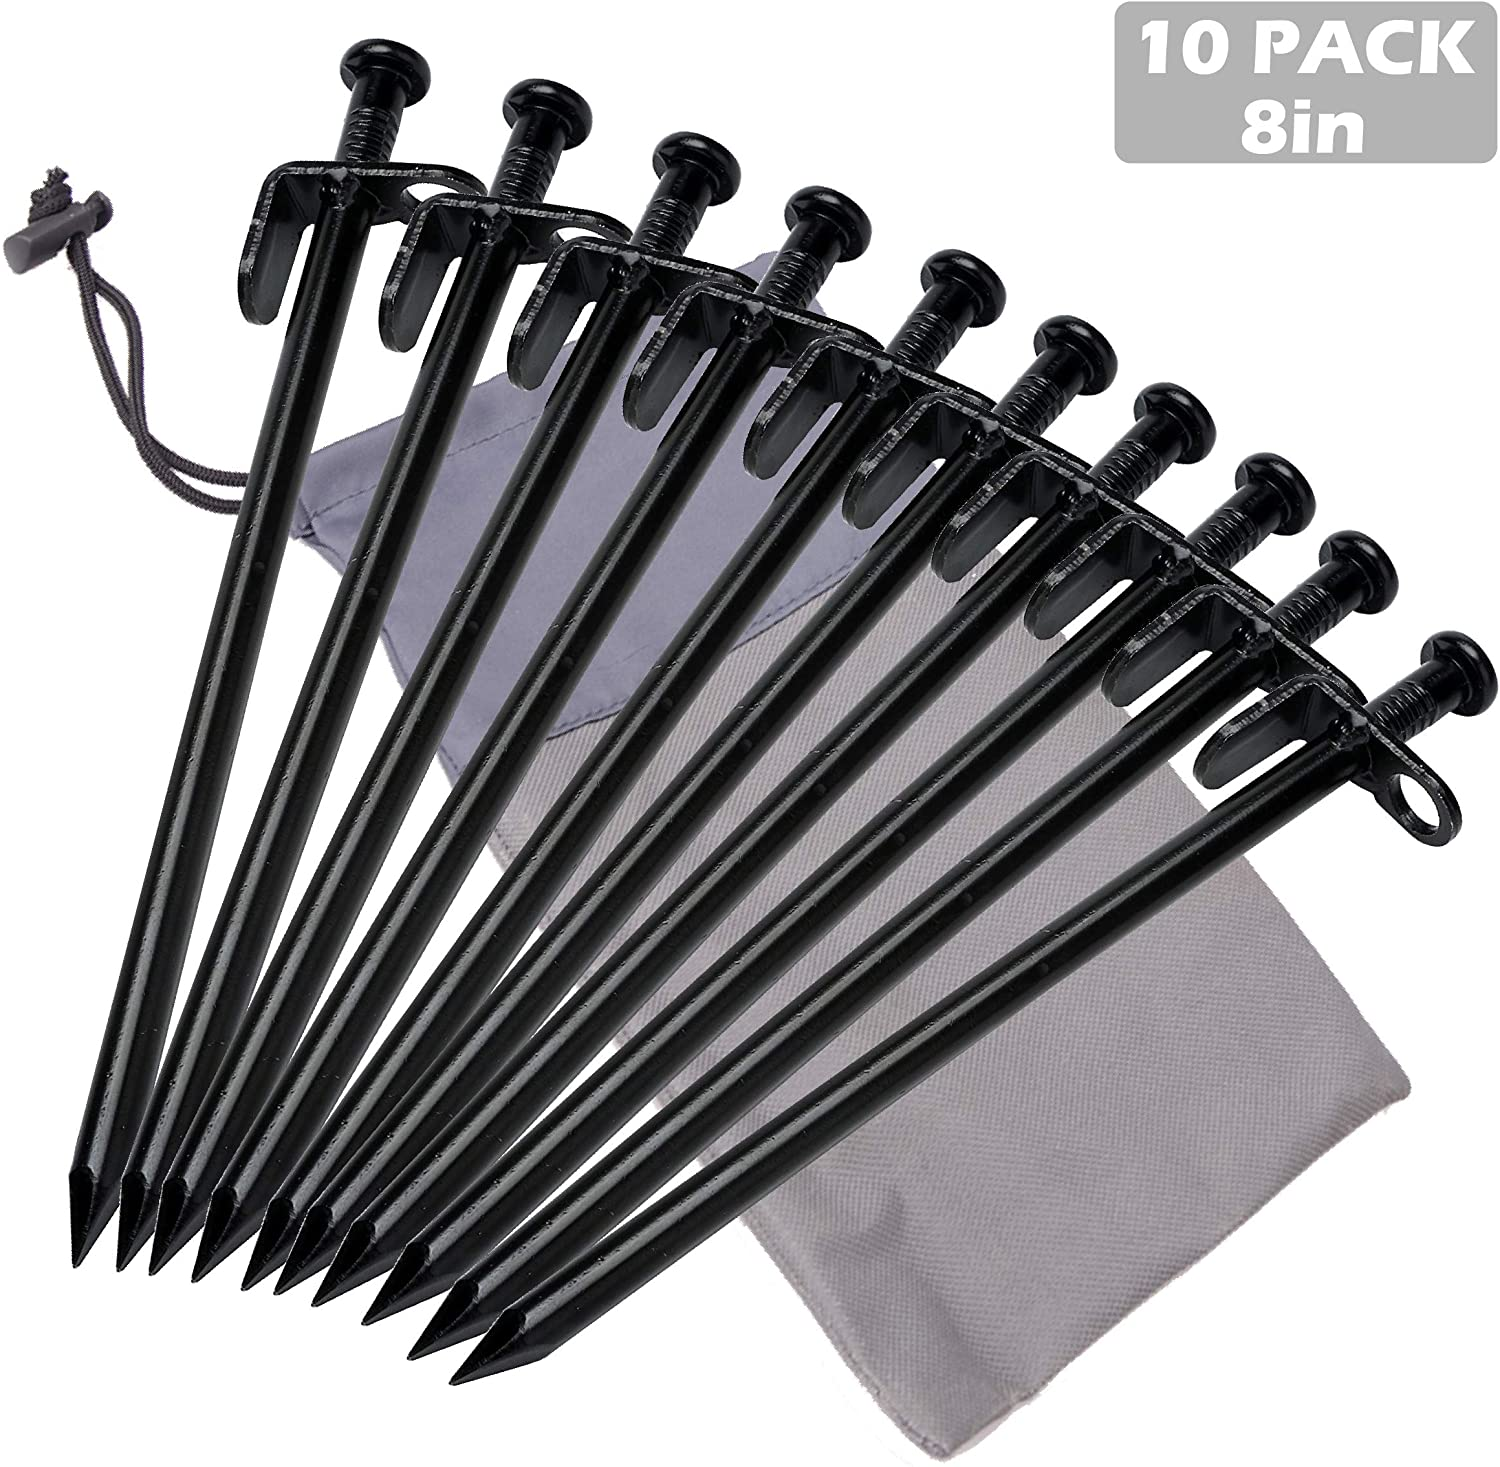 TRIWONDER Tent Stakes Heavy Duty Camping Stakes Forged Steel Tent Pegs Nails Outdoors Solid Stakes with Carrying Bag